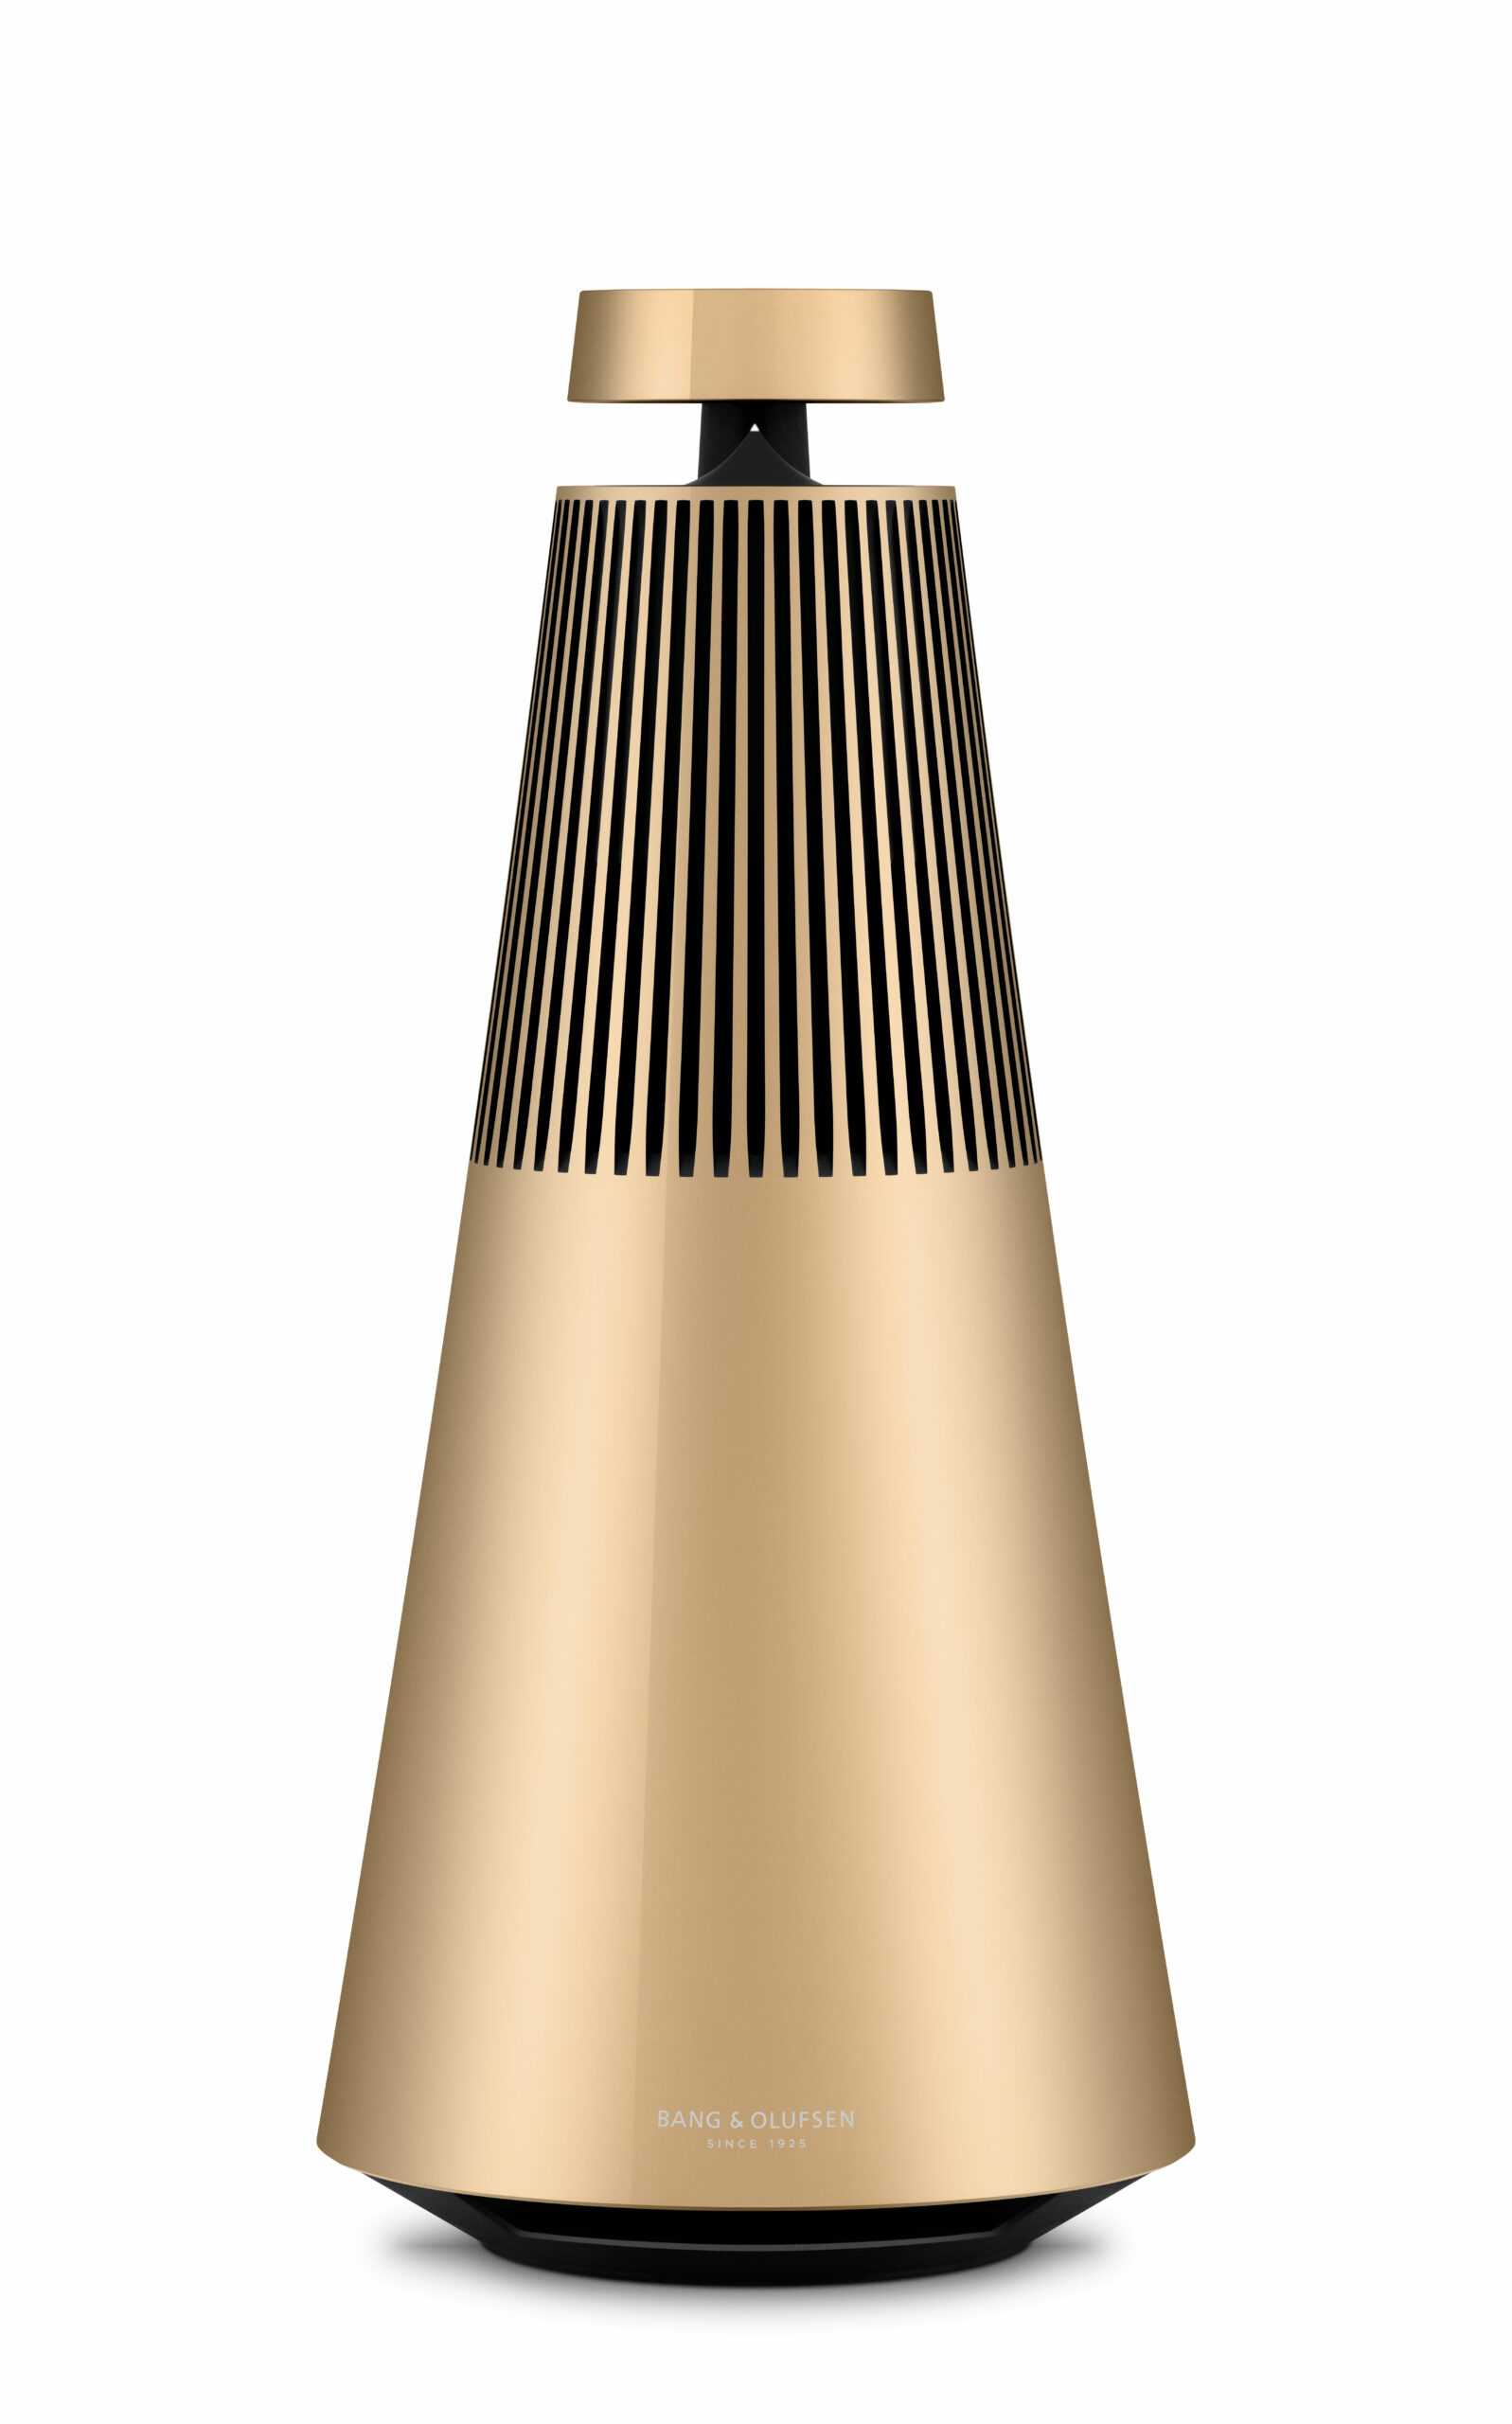 PS_Beosound-2_Gold_Front.tif